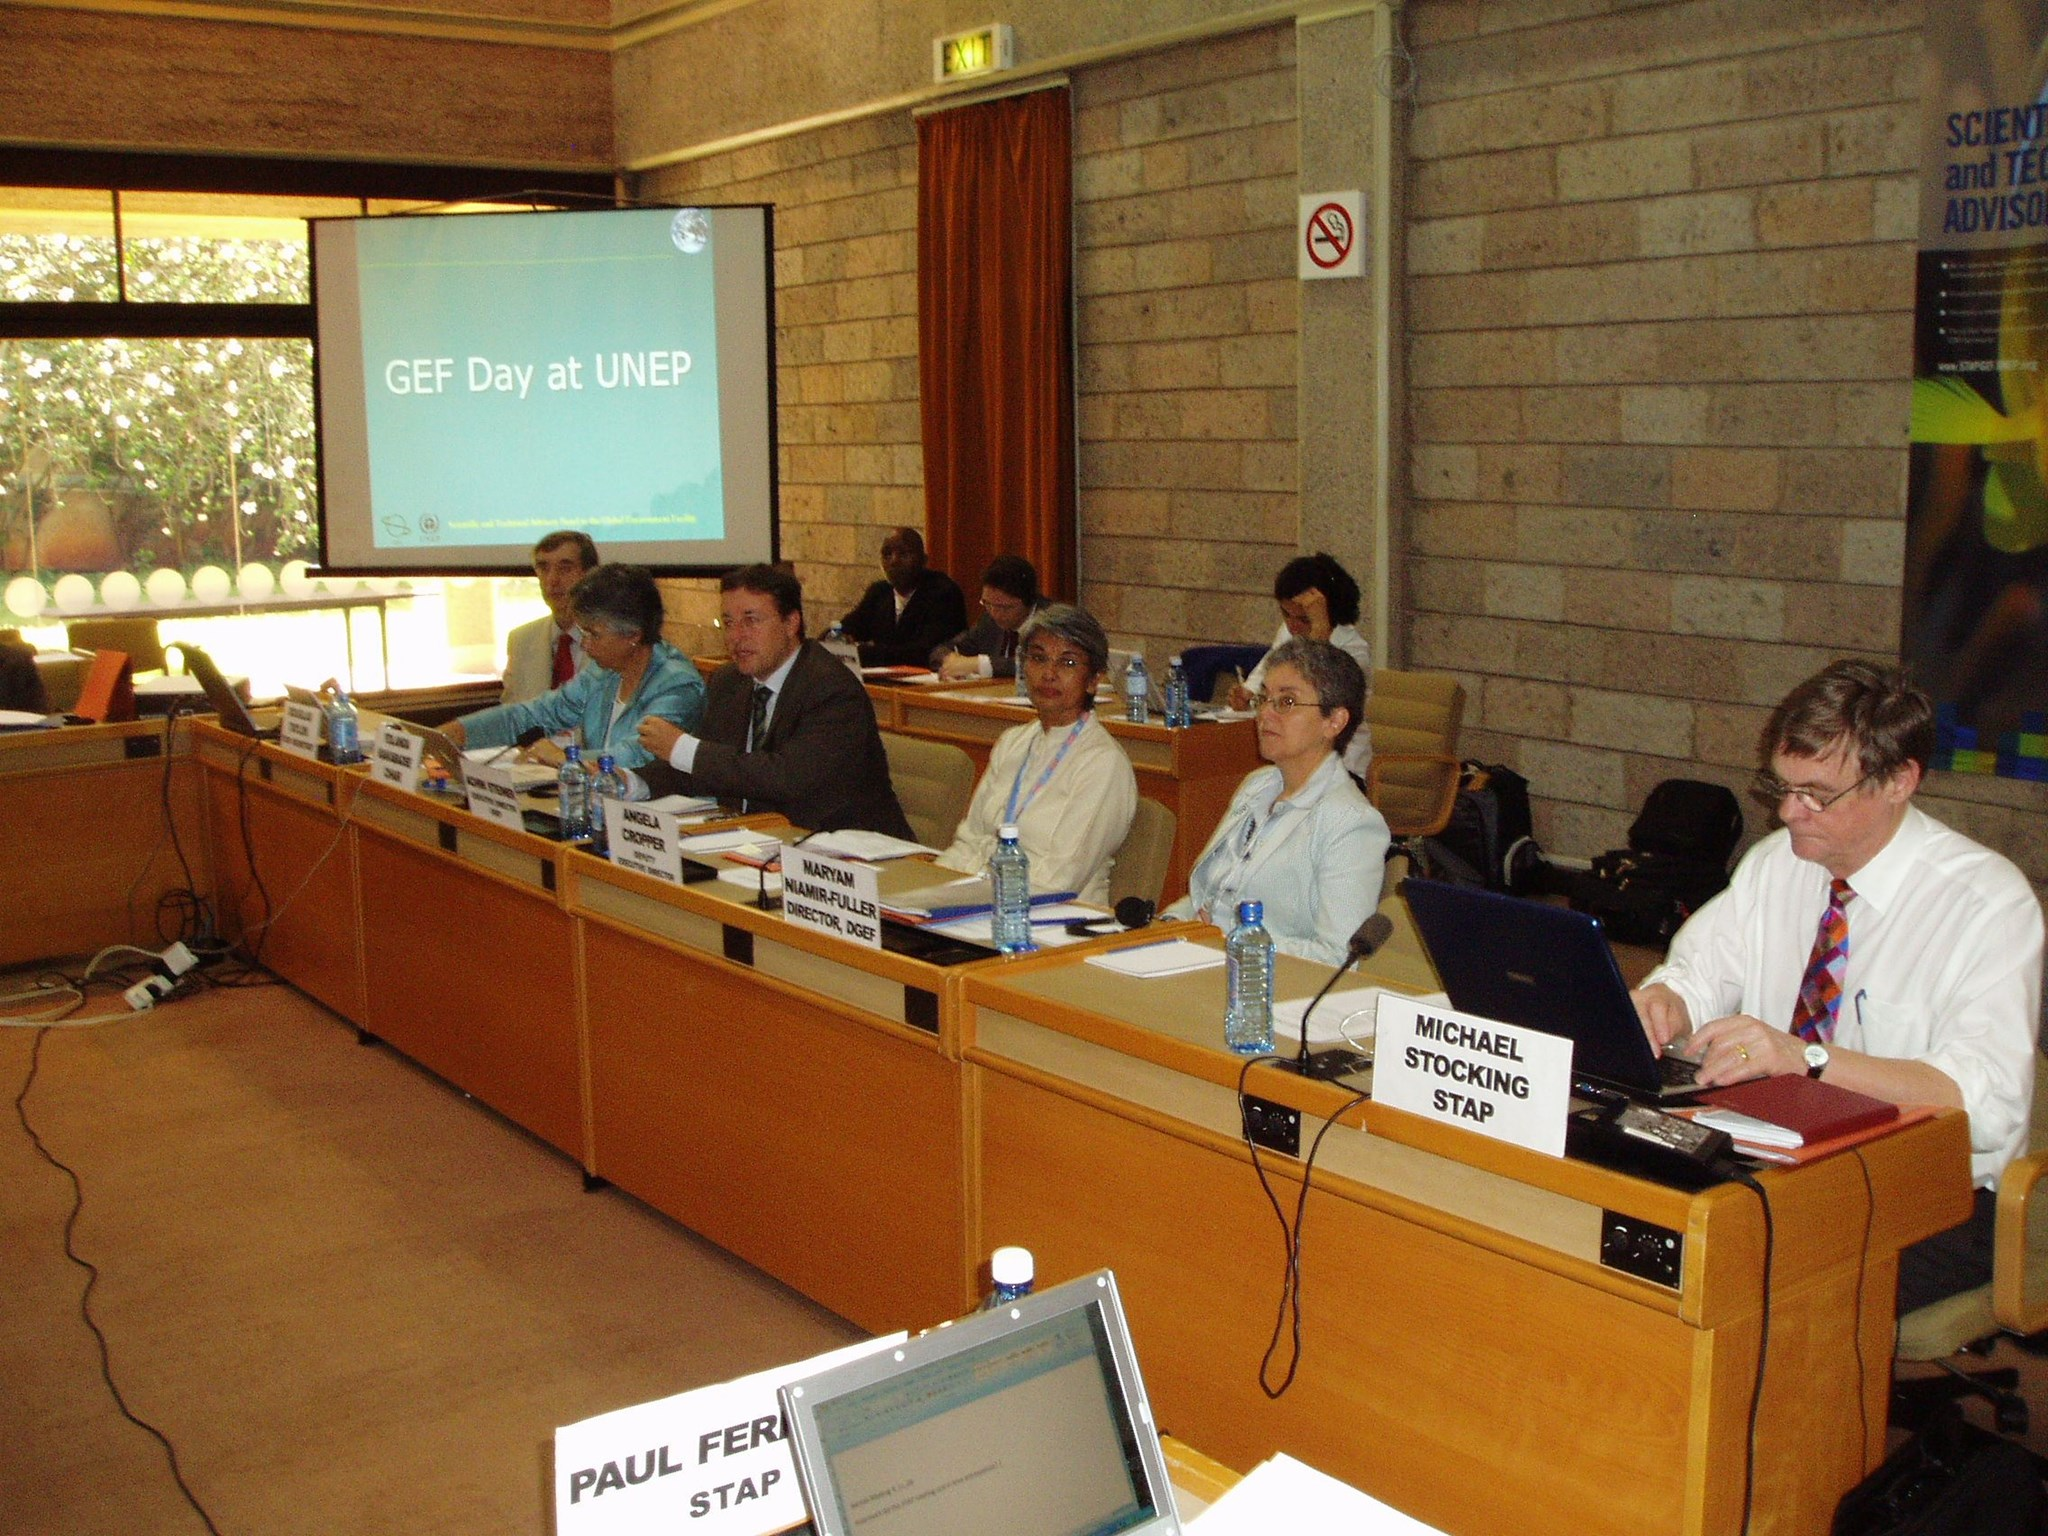 Angela at a GEF-STAP Meeting in UNEP - Nairobi, 2006